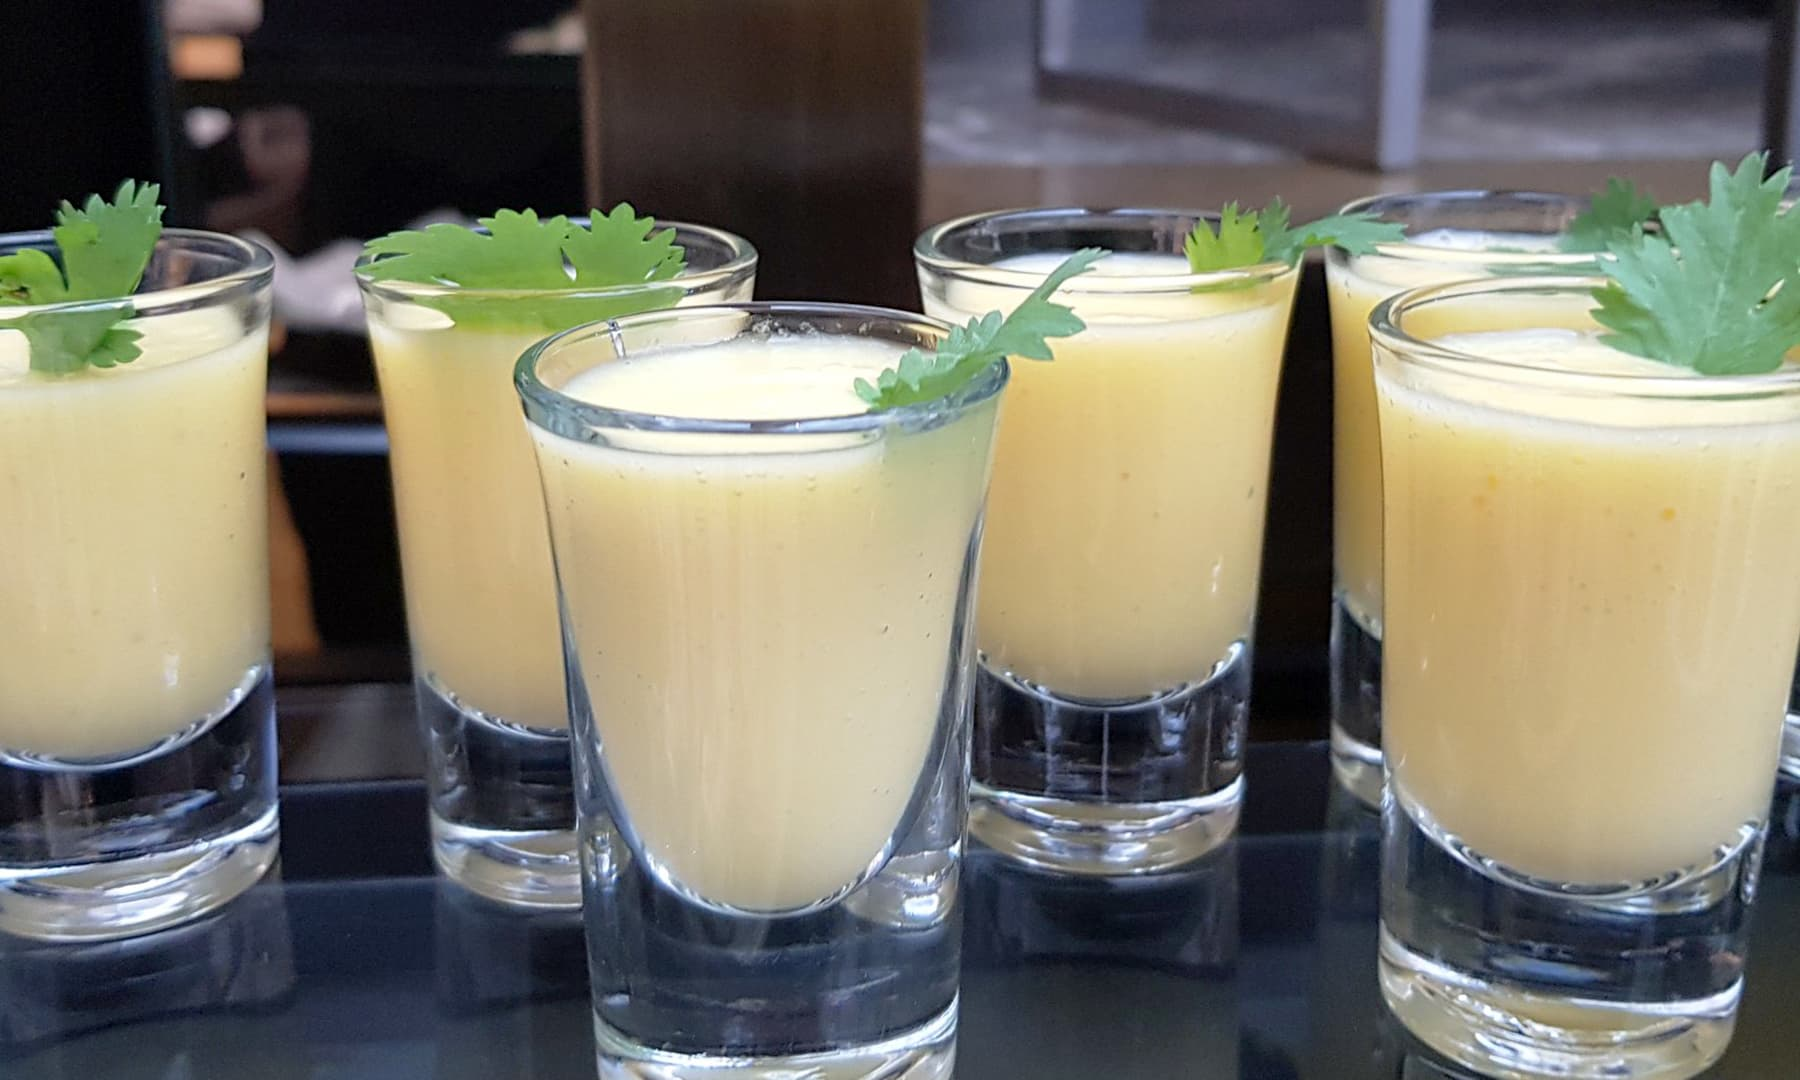 Mango flavoured drinks are arranged in a visually appealing display.